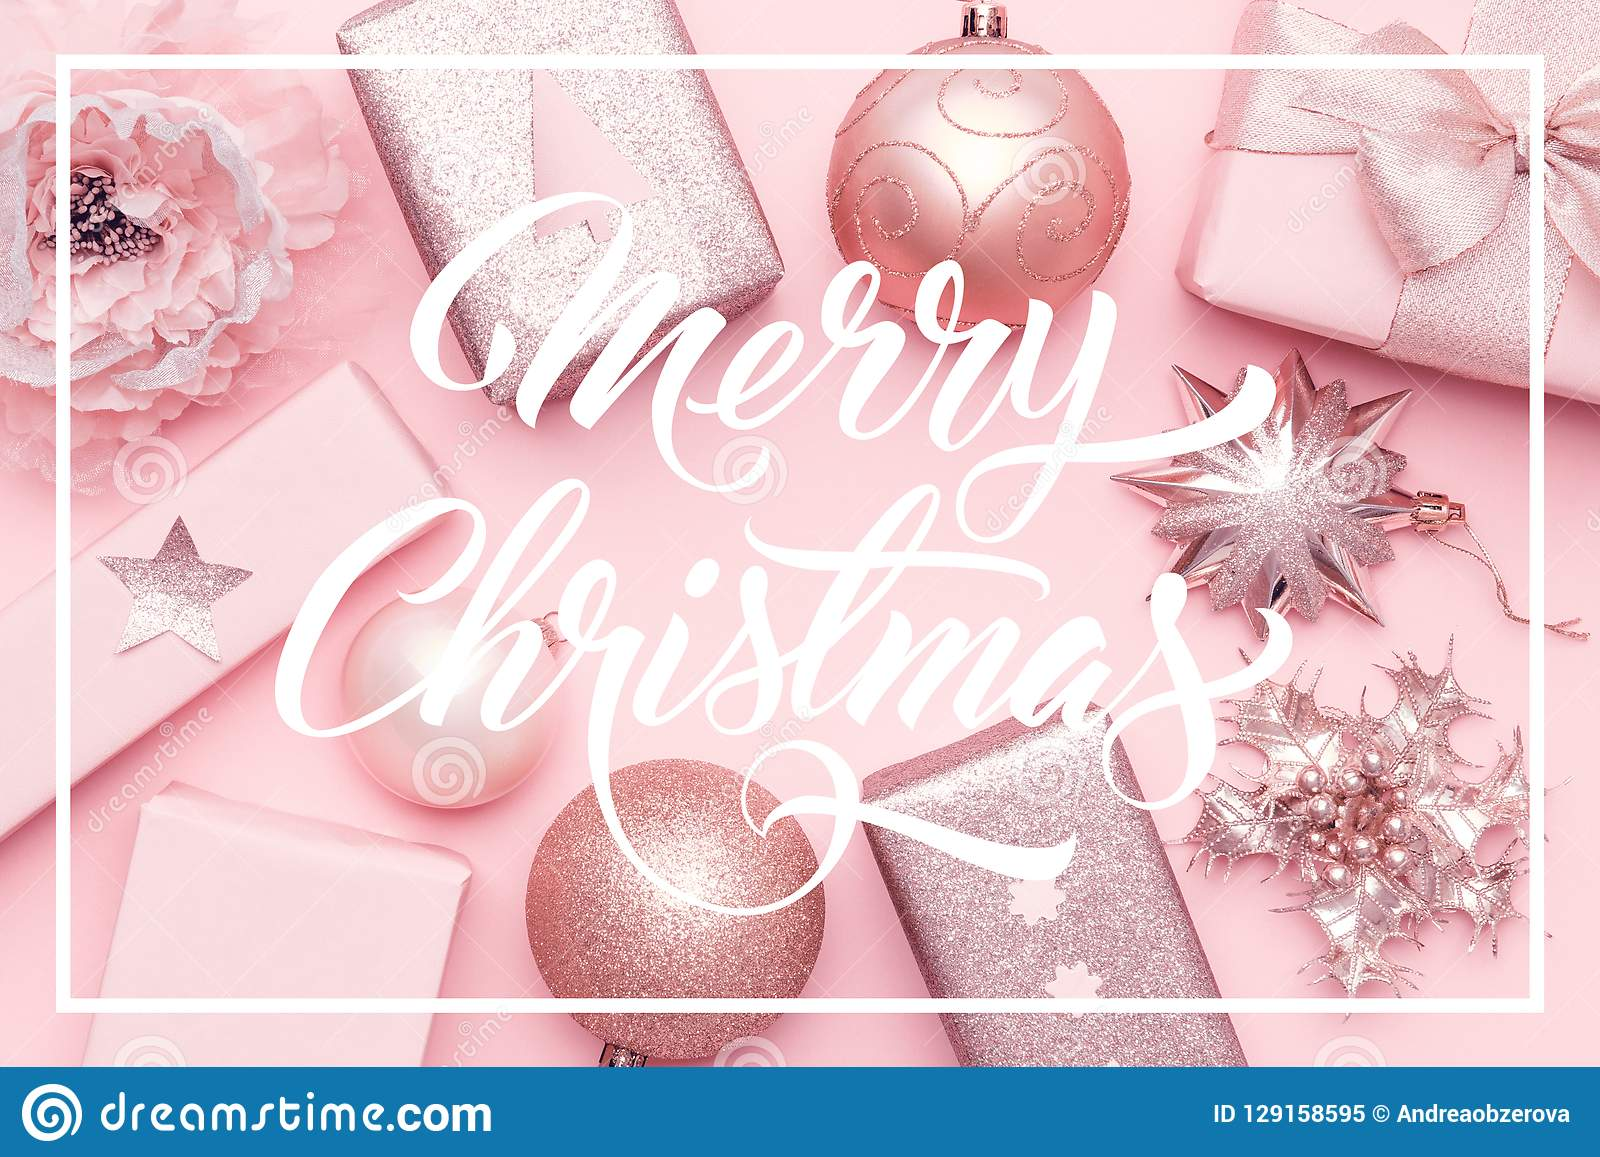 Wrapped xmas boxes, christmas ornaments and baubles. Pink christmas gifts isolated on pastel pink background.